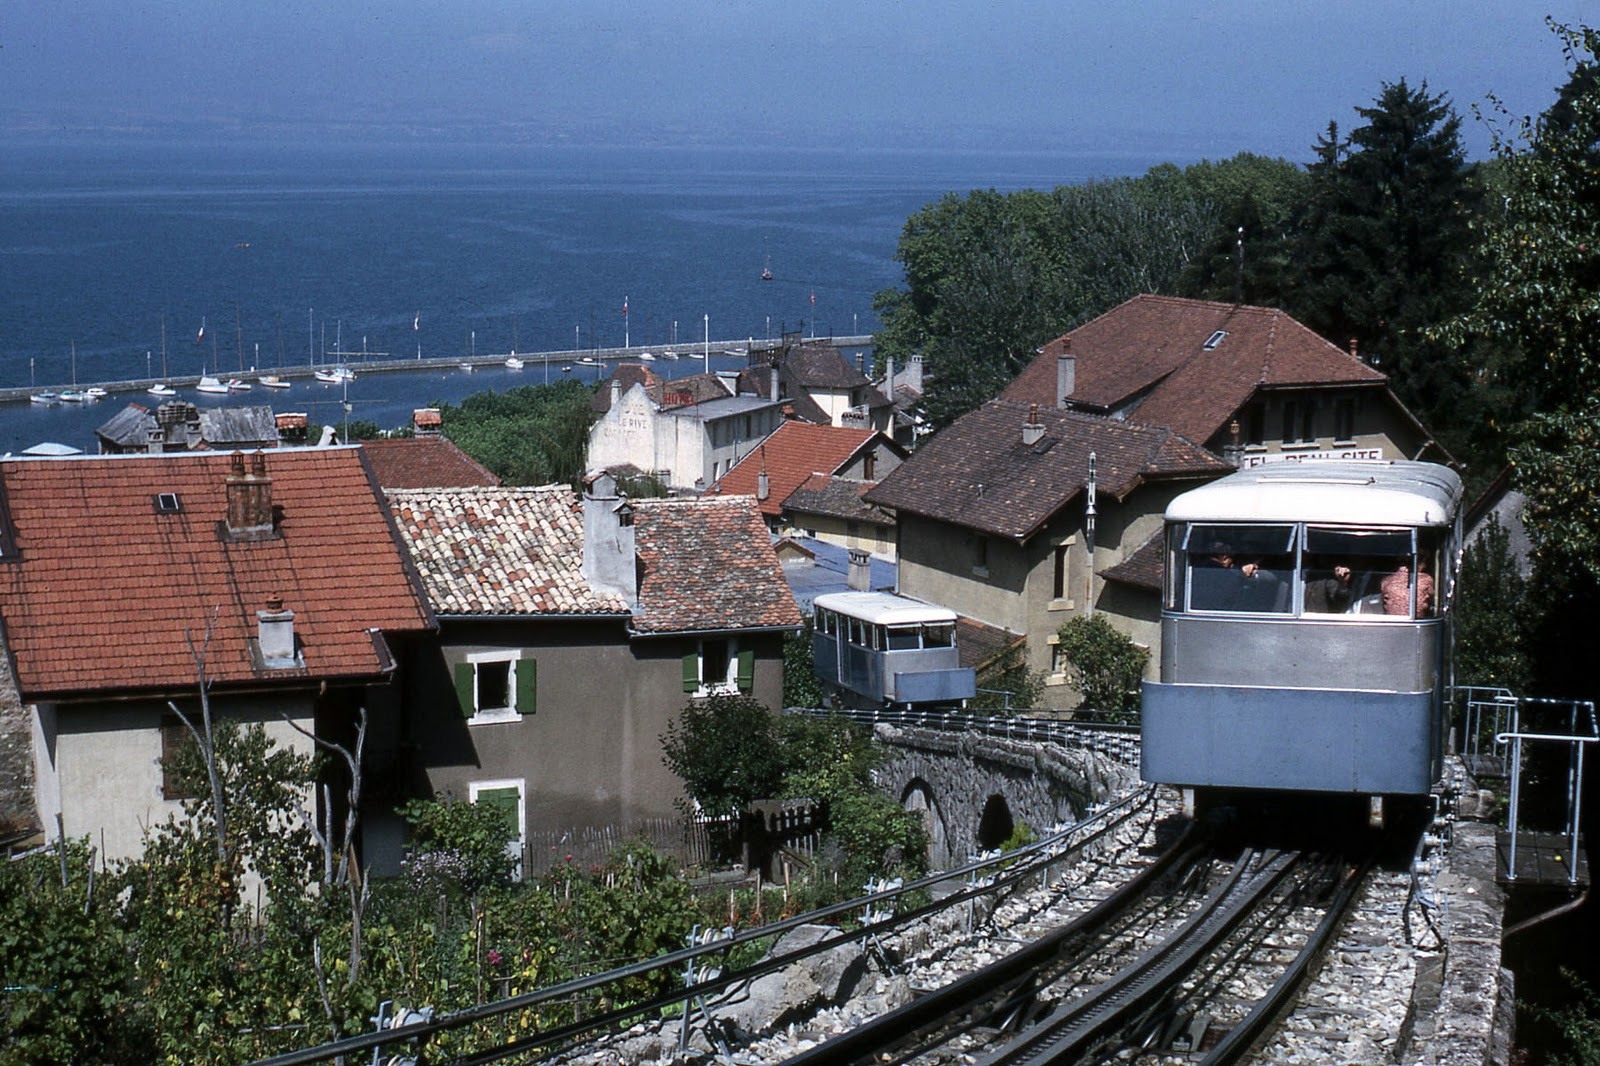 transpress nz the thonon les bains funicular. Black Bedroom Furniture Sets. Home Design Ideas